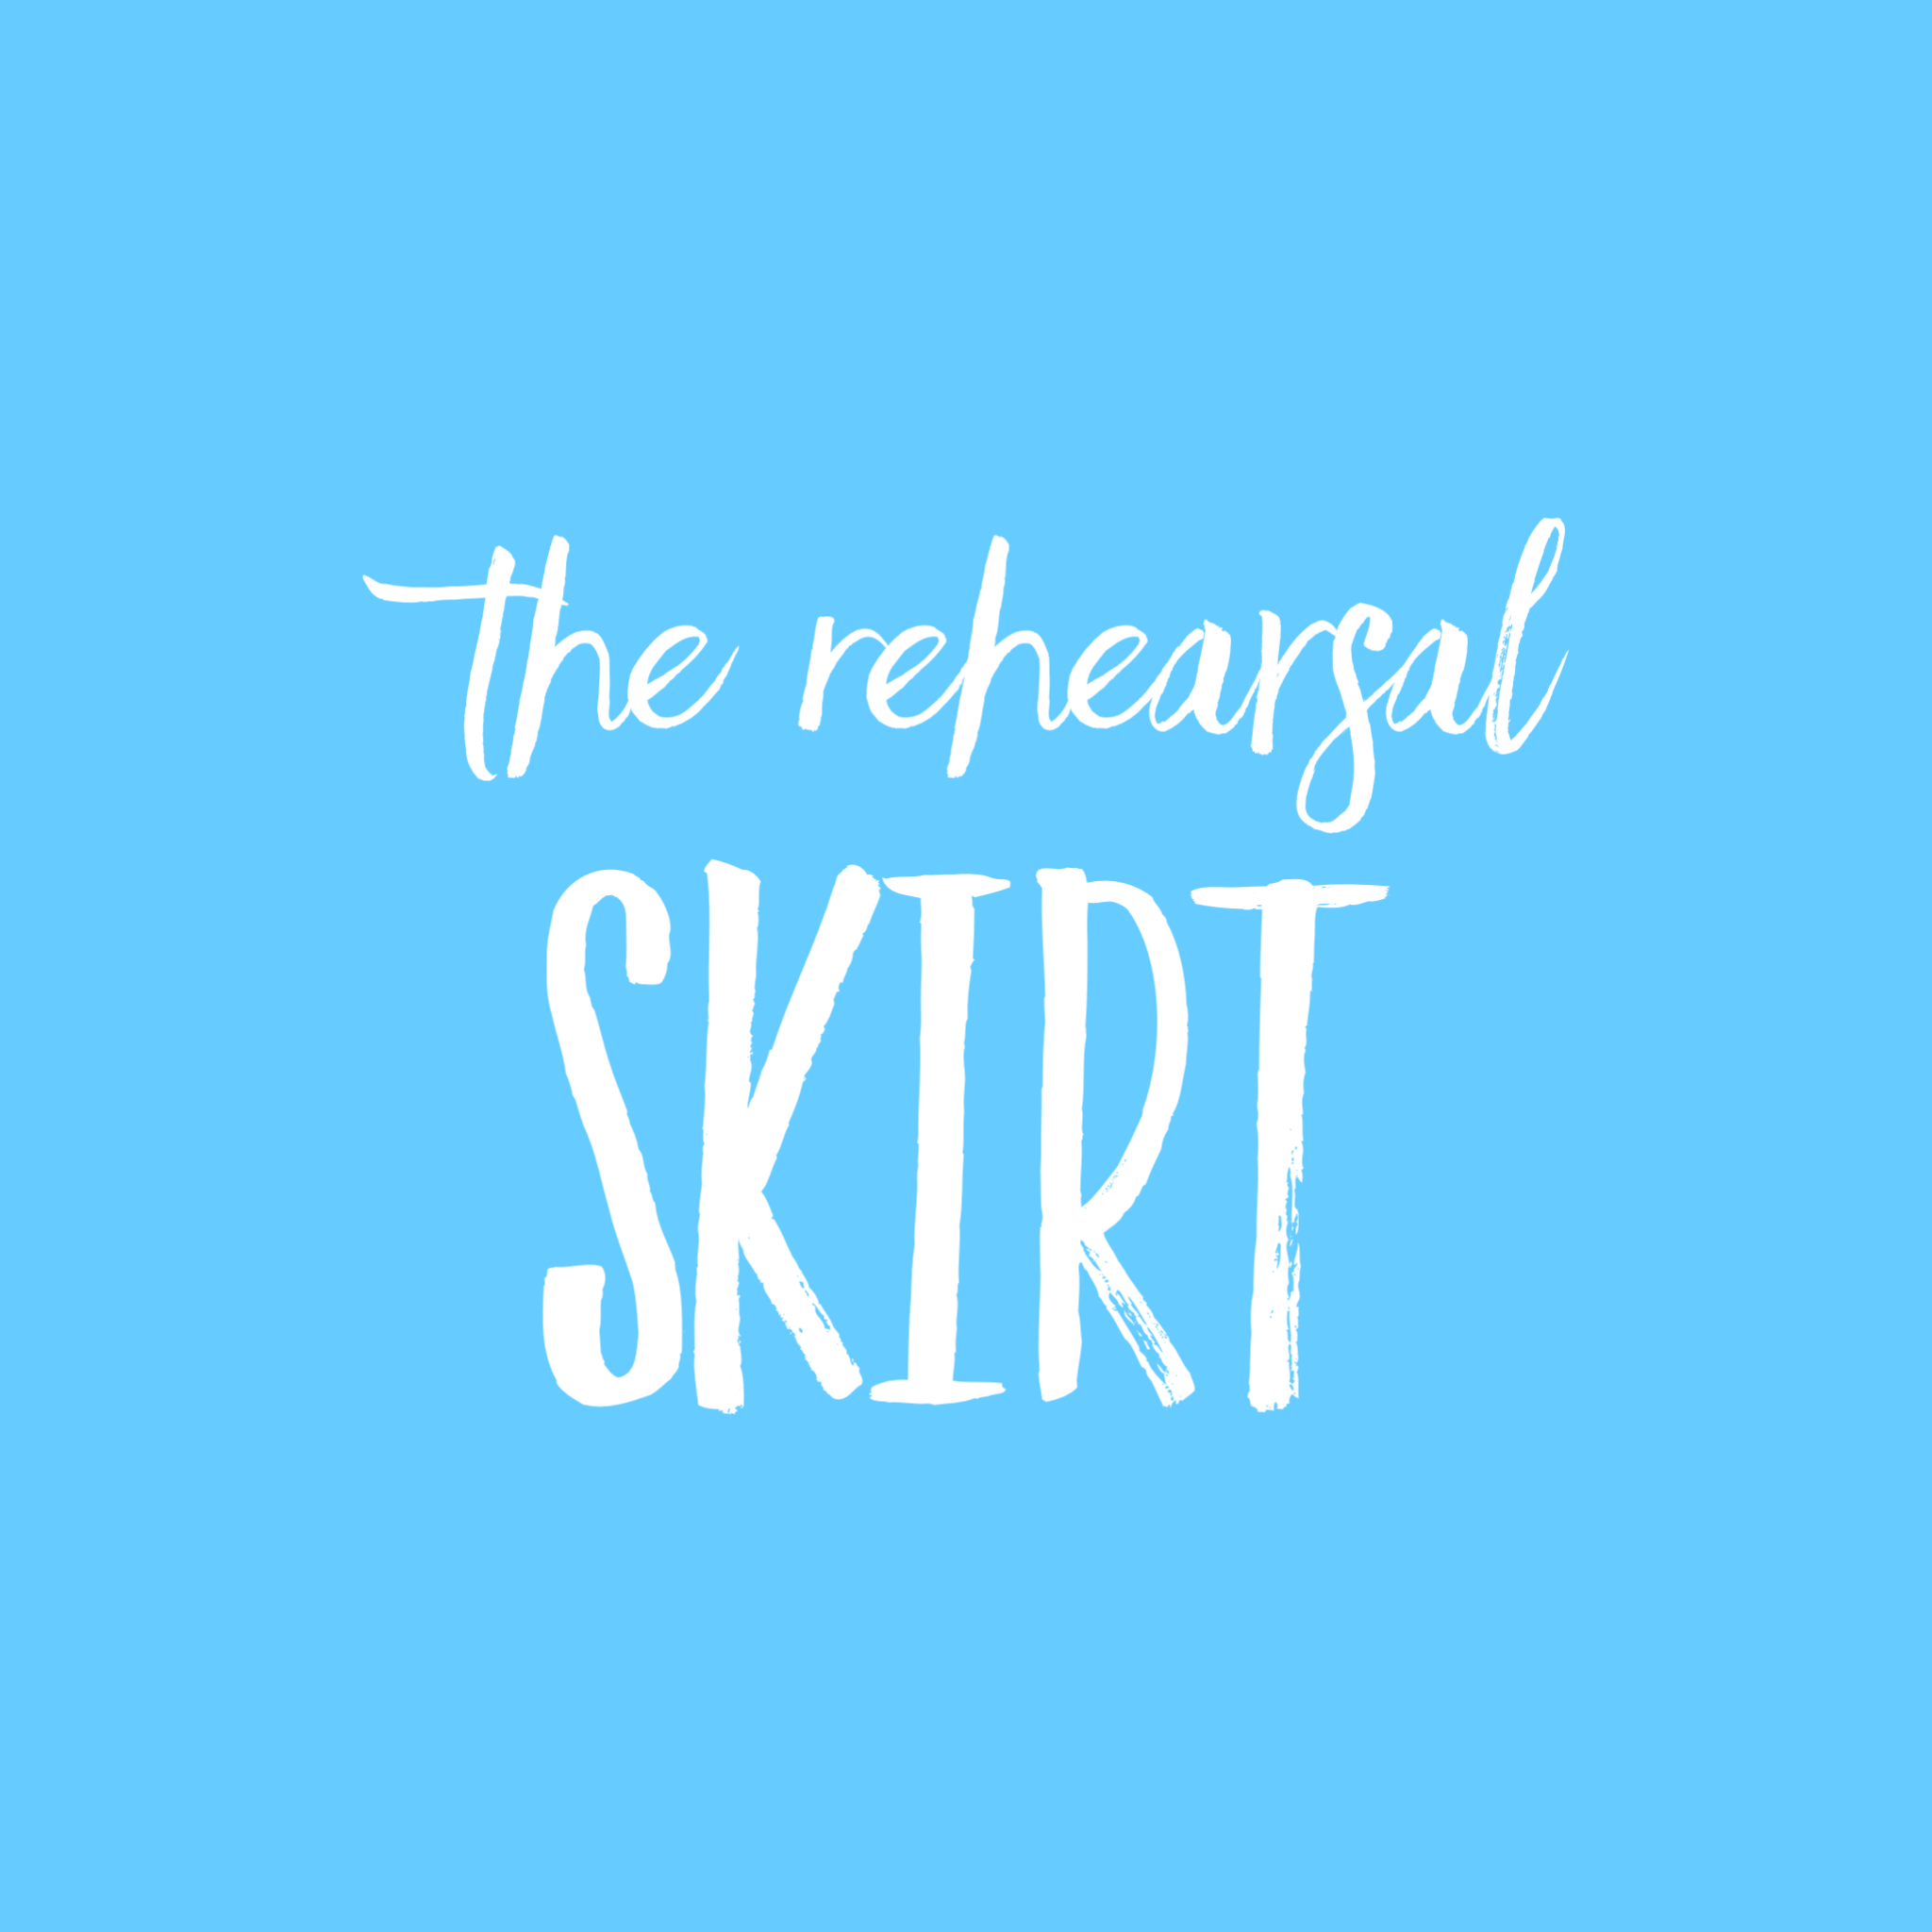 The Rehearsal Skirt